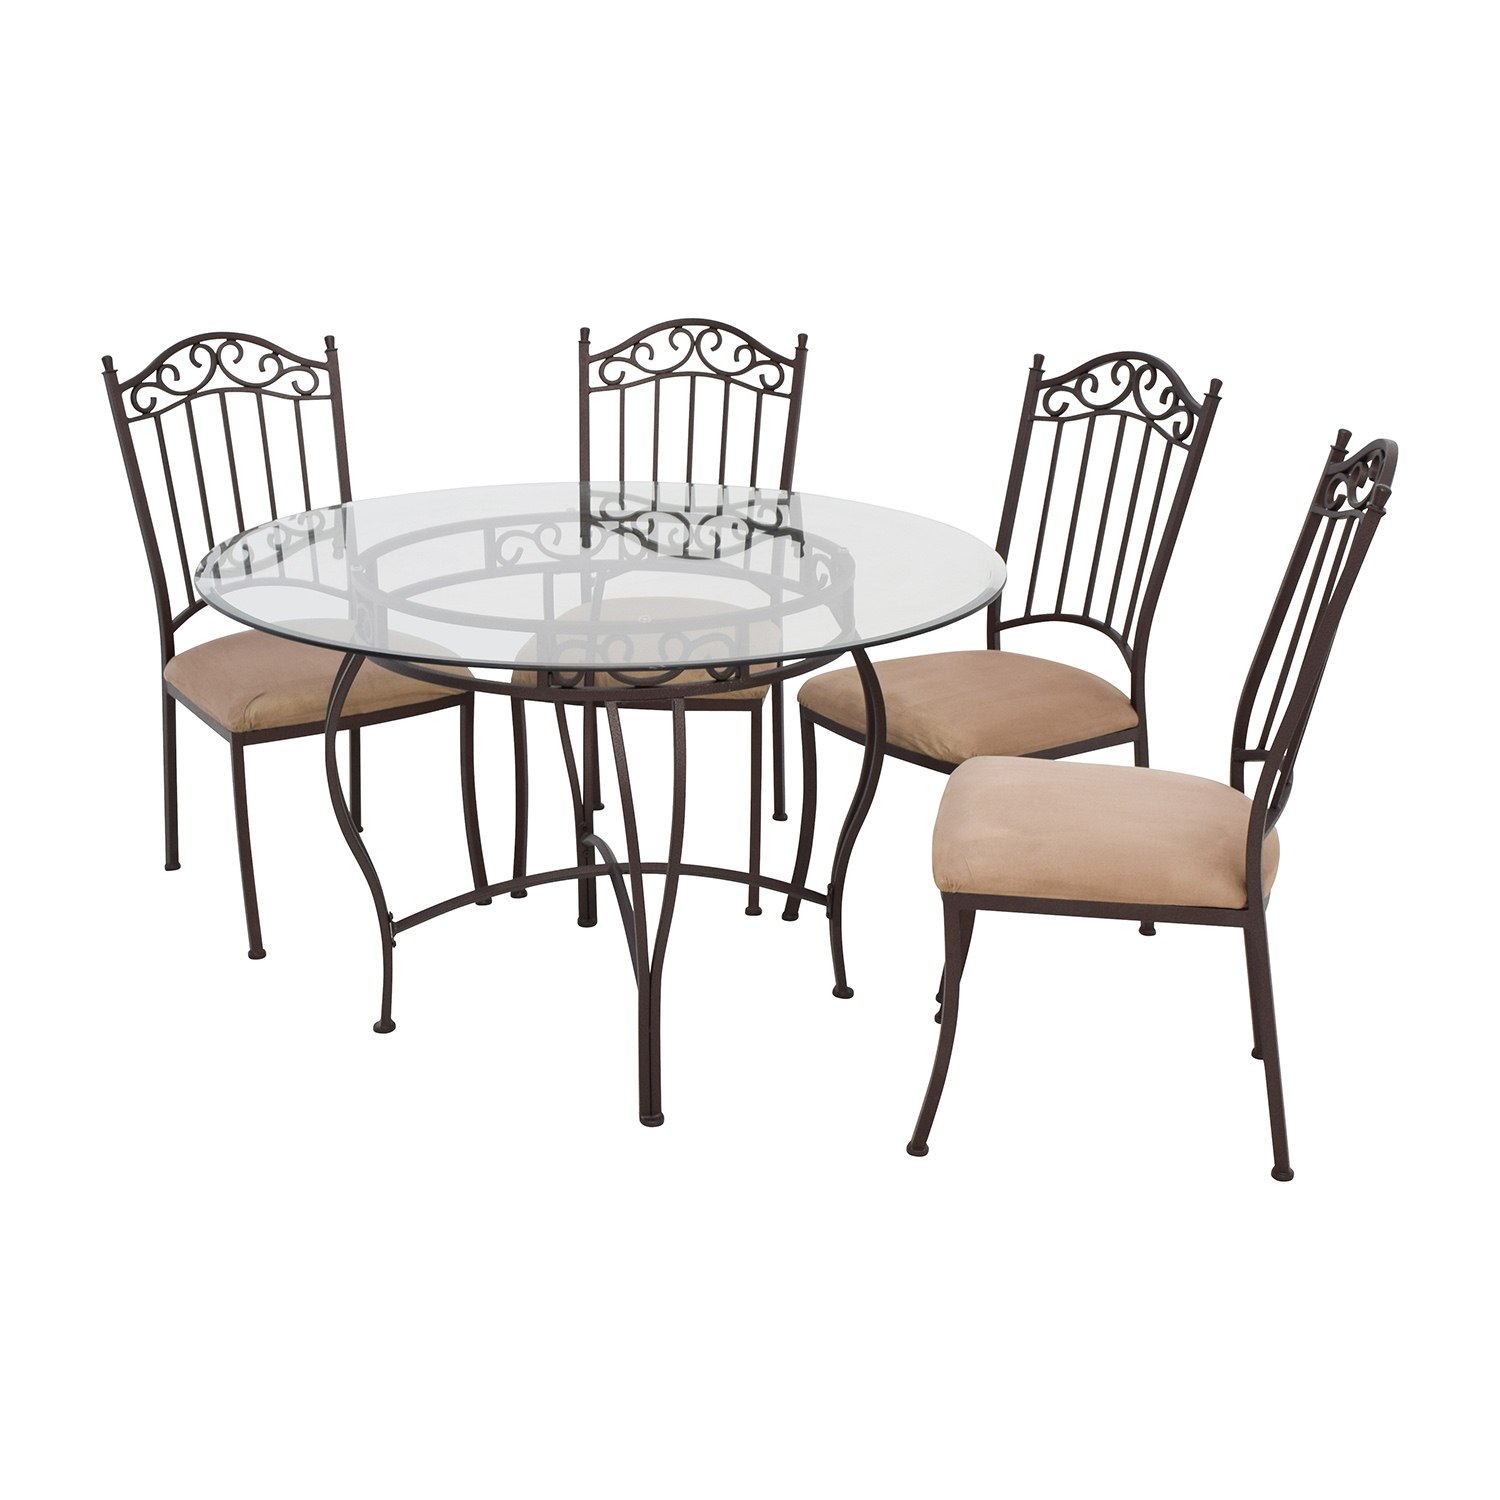 Wrought Iron Round Glass Table And Chairs / Tables